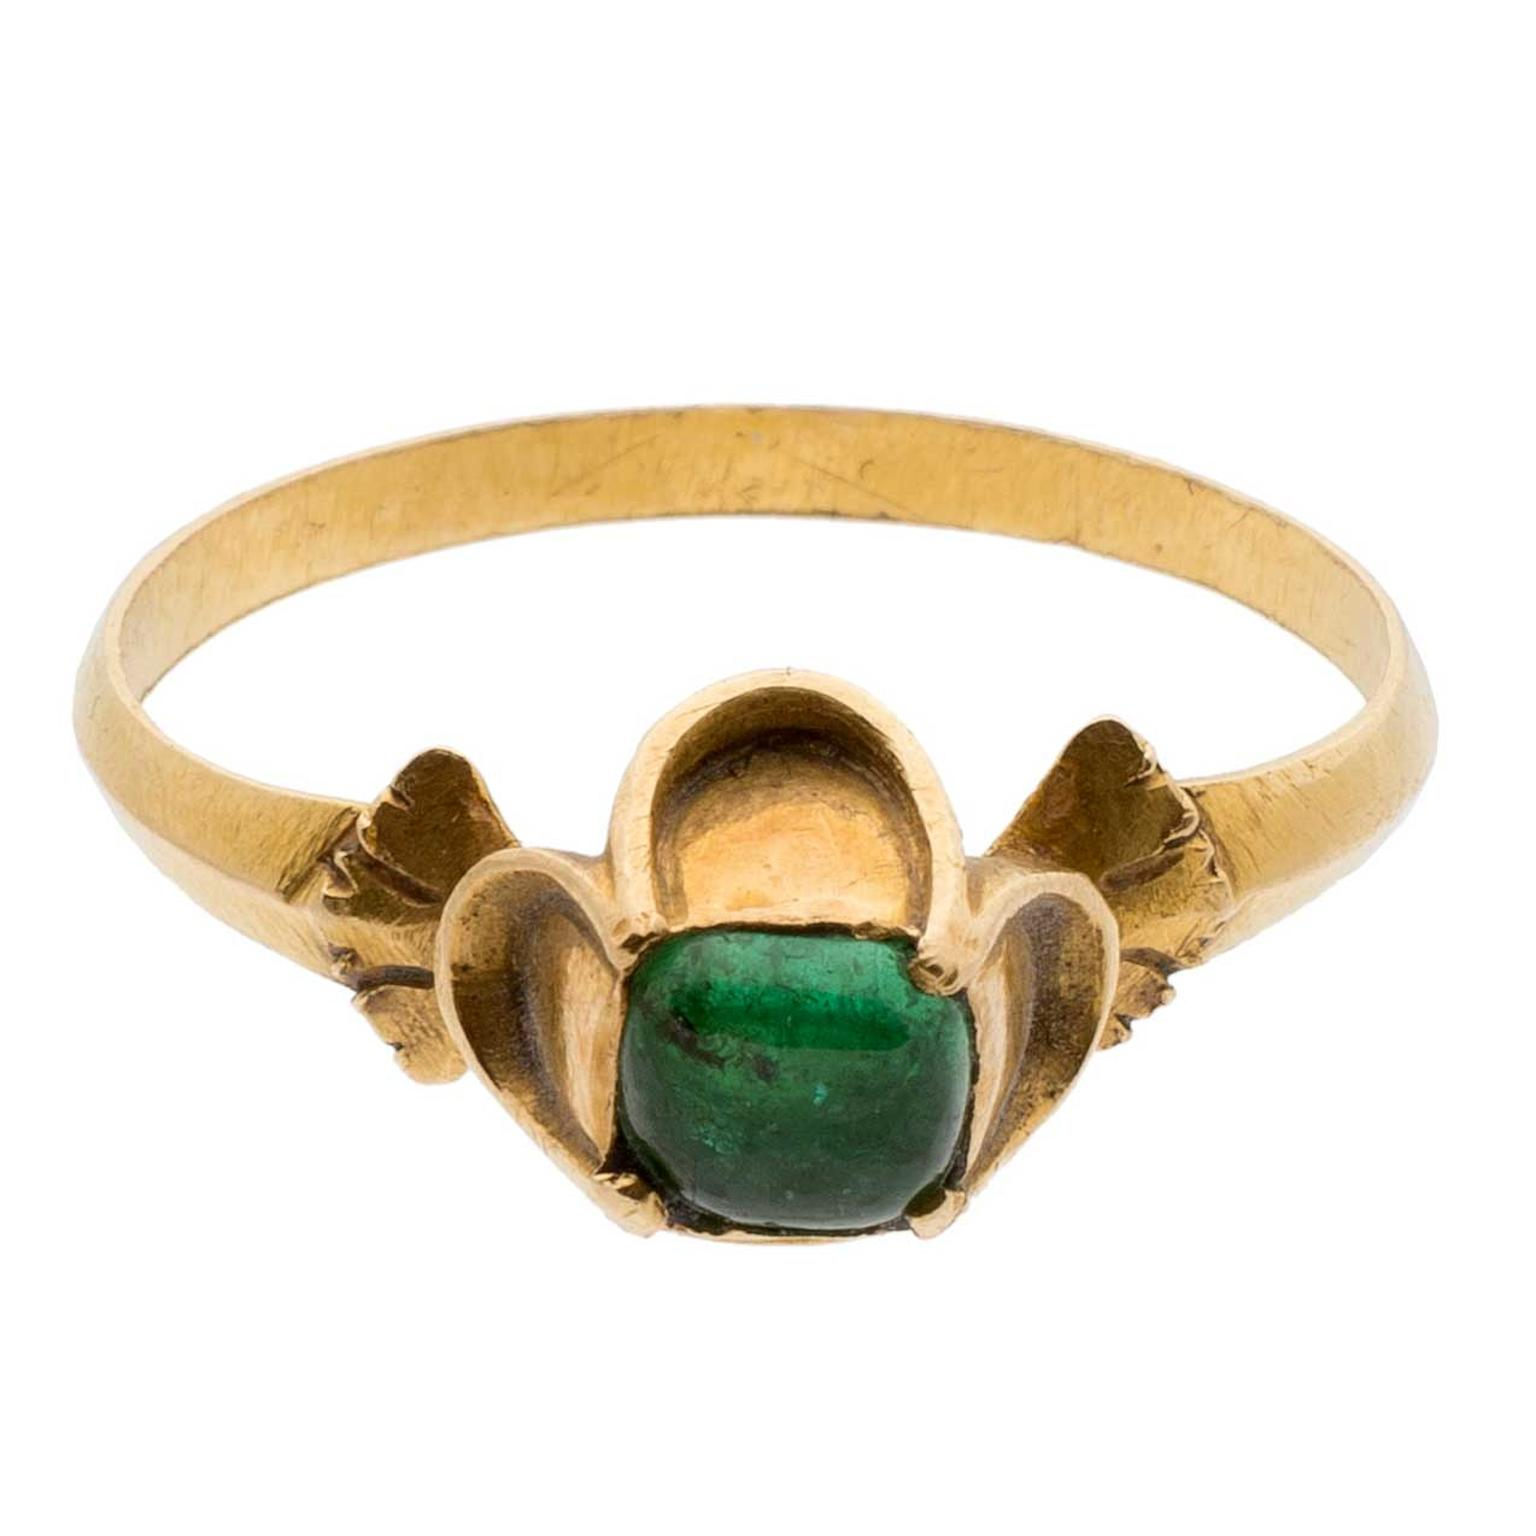 Les Enluminures Elizabethan gold and emerald ring